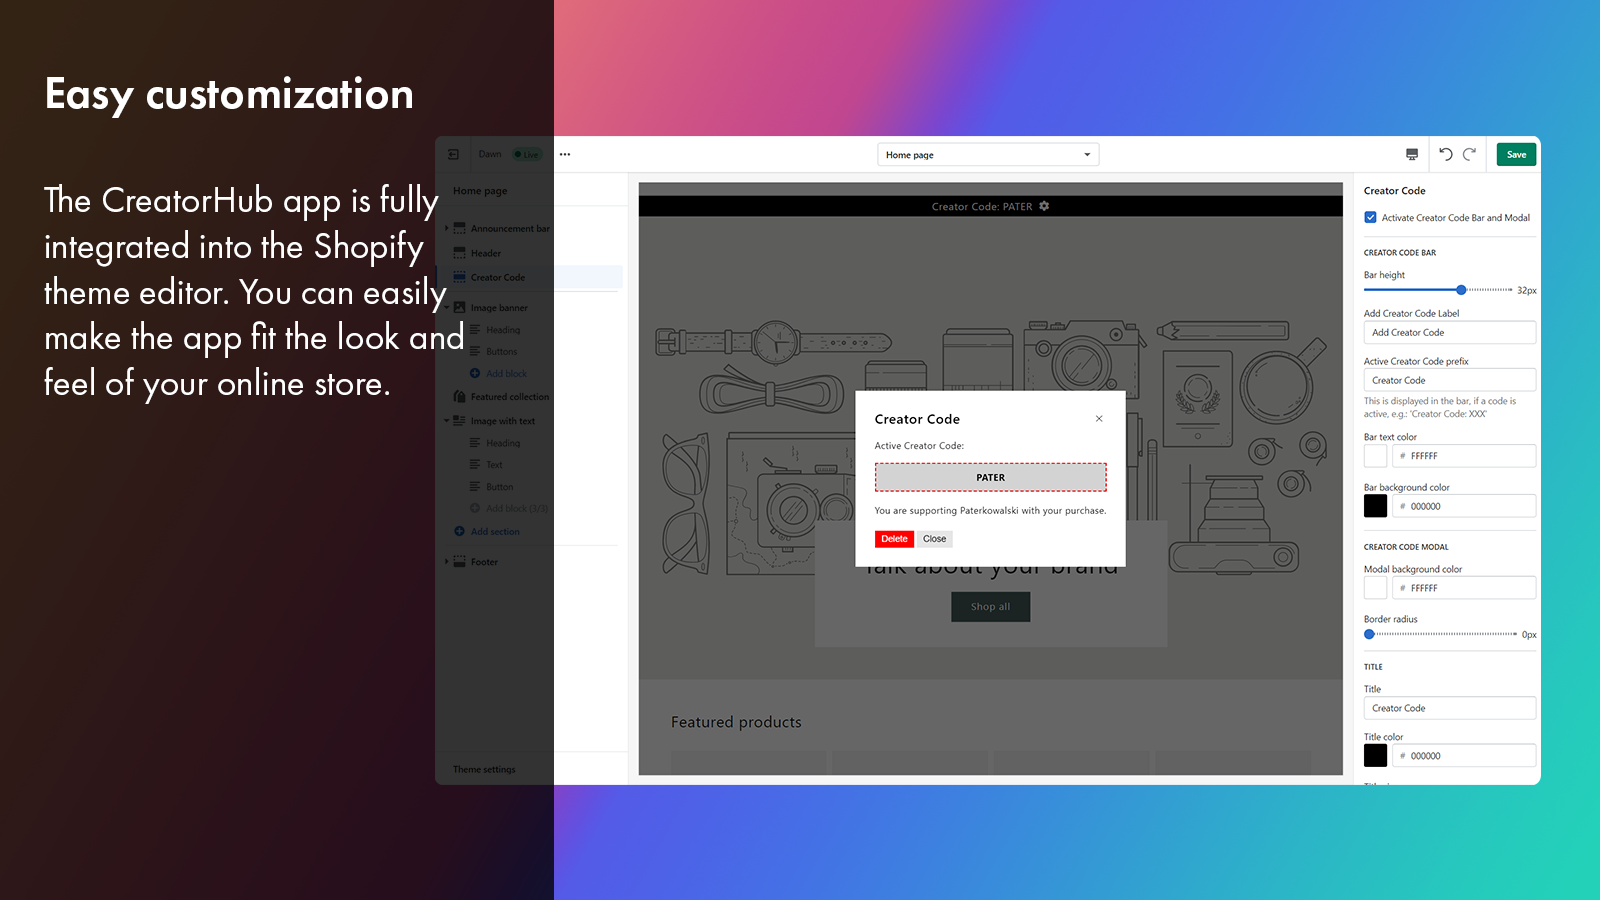 Easy customization with the shopify theme editor